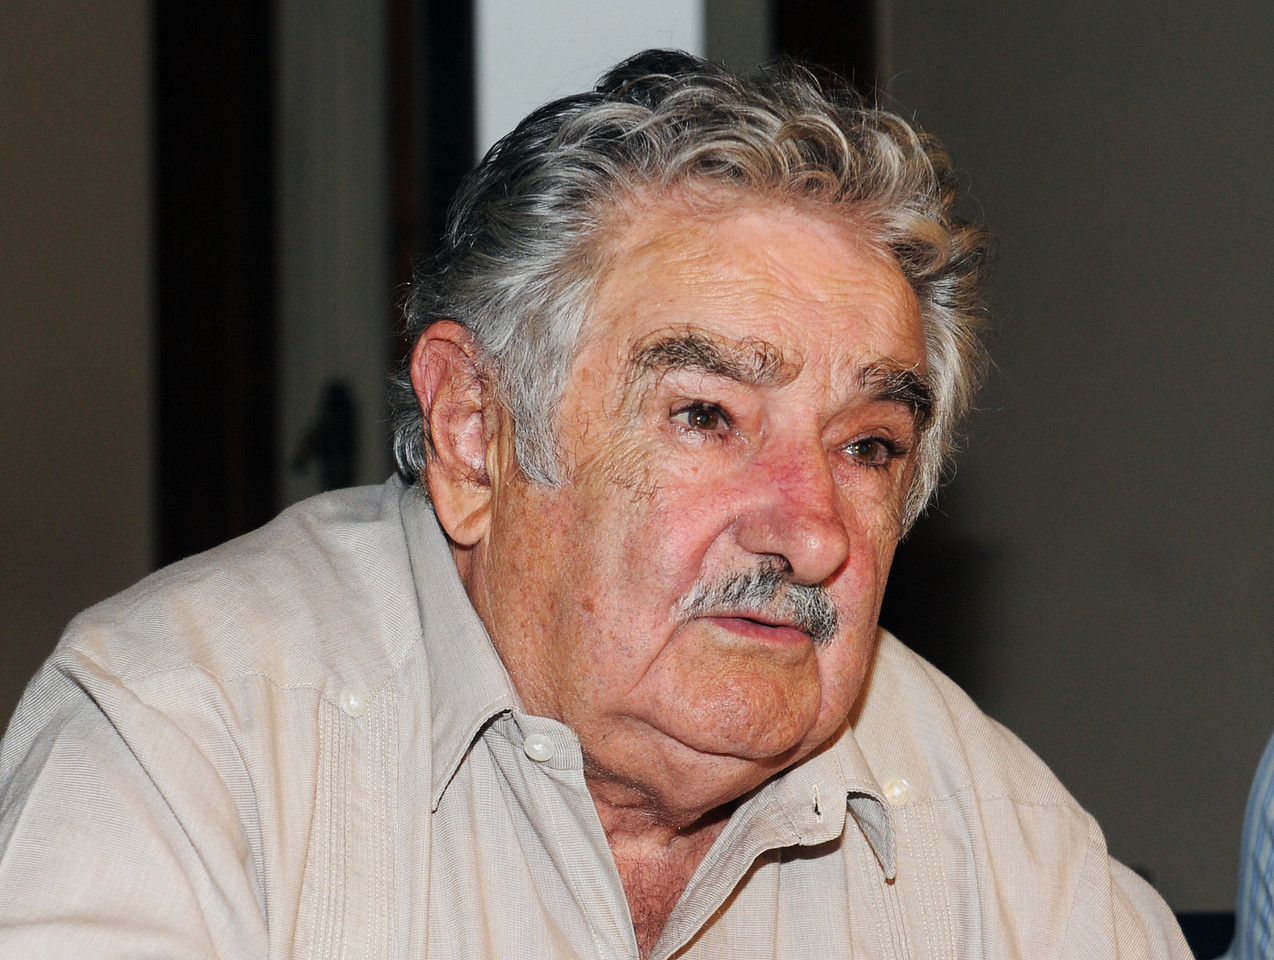 "The ""Poorest"" President in the World.  <br /> <br /> José Mujica, currently the president of Uruguay, is known for being a rarity among powerful politicians, as he chooses to donate around 90 percent of his $12,000/month salary to charities that benefit poor people and small entrepreneurs.  <br /> <br /> As a guerilla for Tupamaros (A ""Robin Hood"" organization that stole from the rich and gave to the poor), he was imprisoned twice, kept in horrible conditions, escaped once and was only apprehended after being shot six times by the police.  He was released 14 years later when a constitutional democracy was restored."